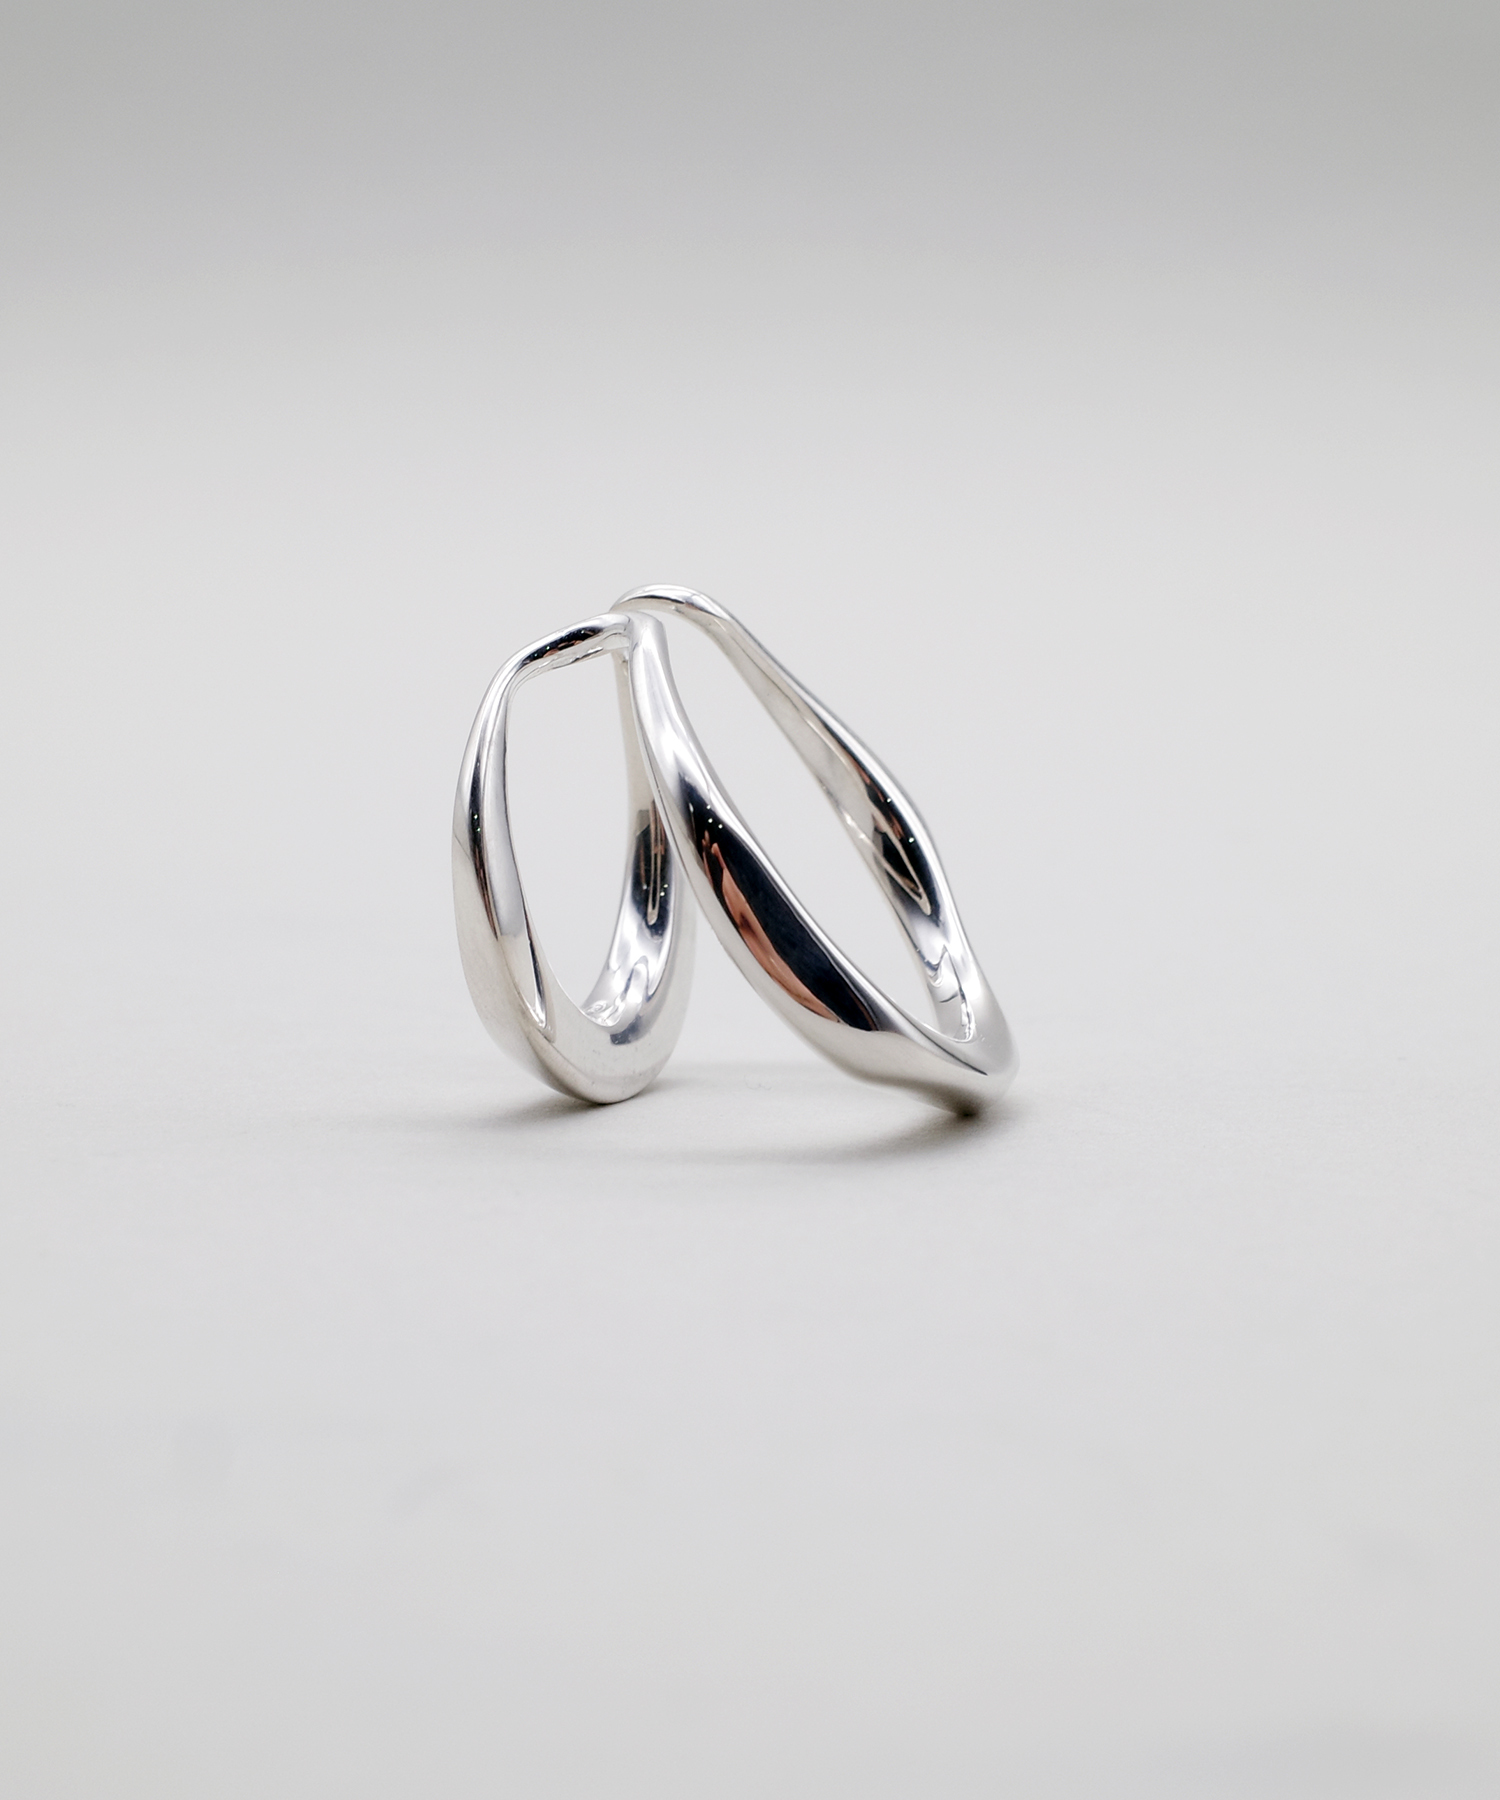 【blanc iris/ ブランイリス】Volute collection  Sterling Silver Ear Cuff /イヤーカフ